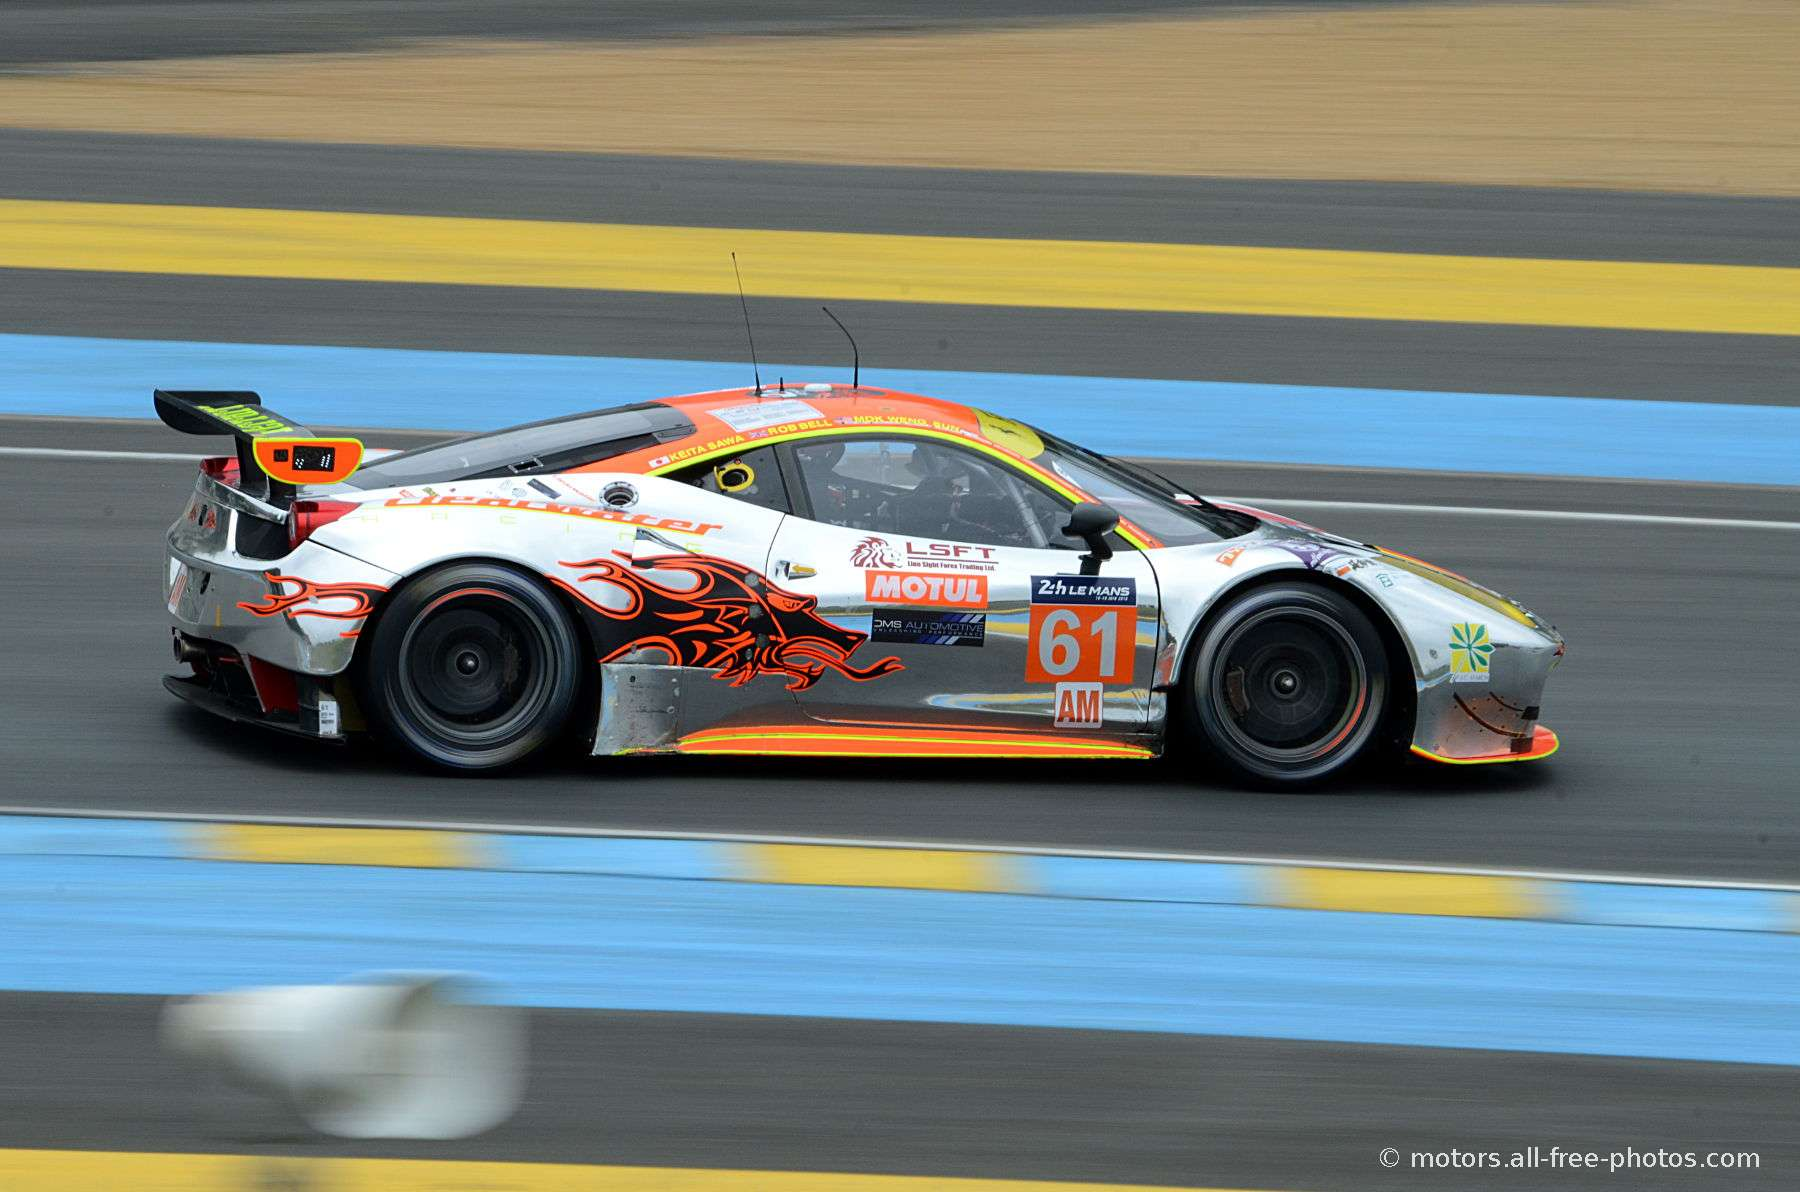 Ferrari 458 Italia - Team Clearwater Racing